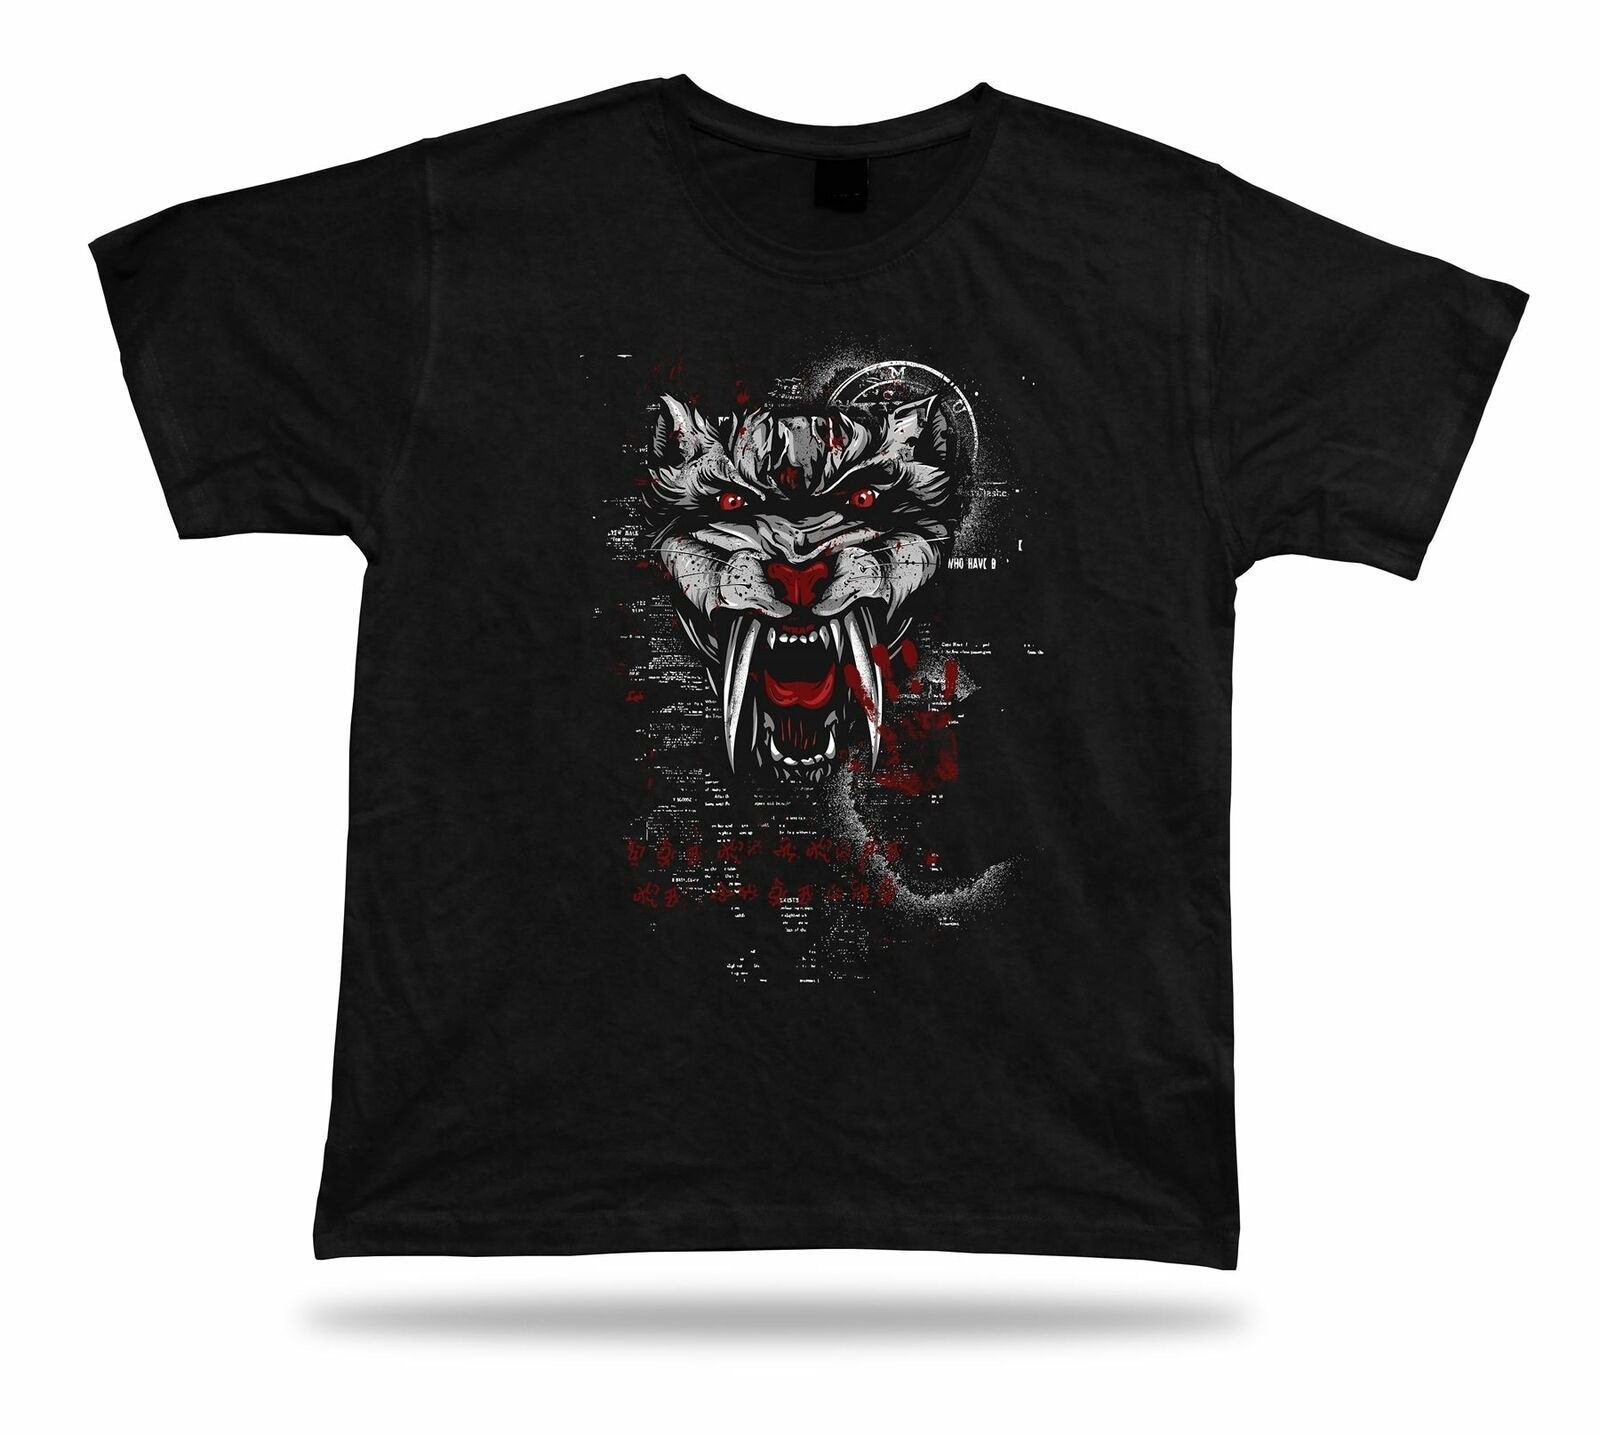 Primary image for Monster Teeth skull art design Tshirt birhday apparel special spiritual gift